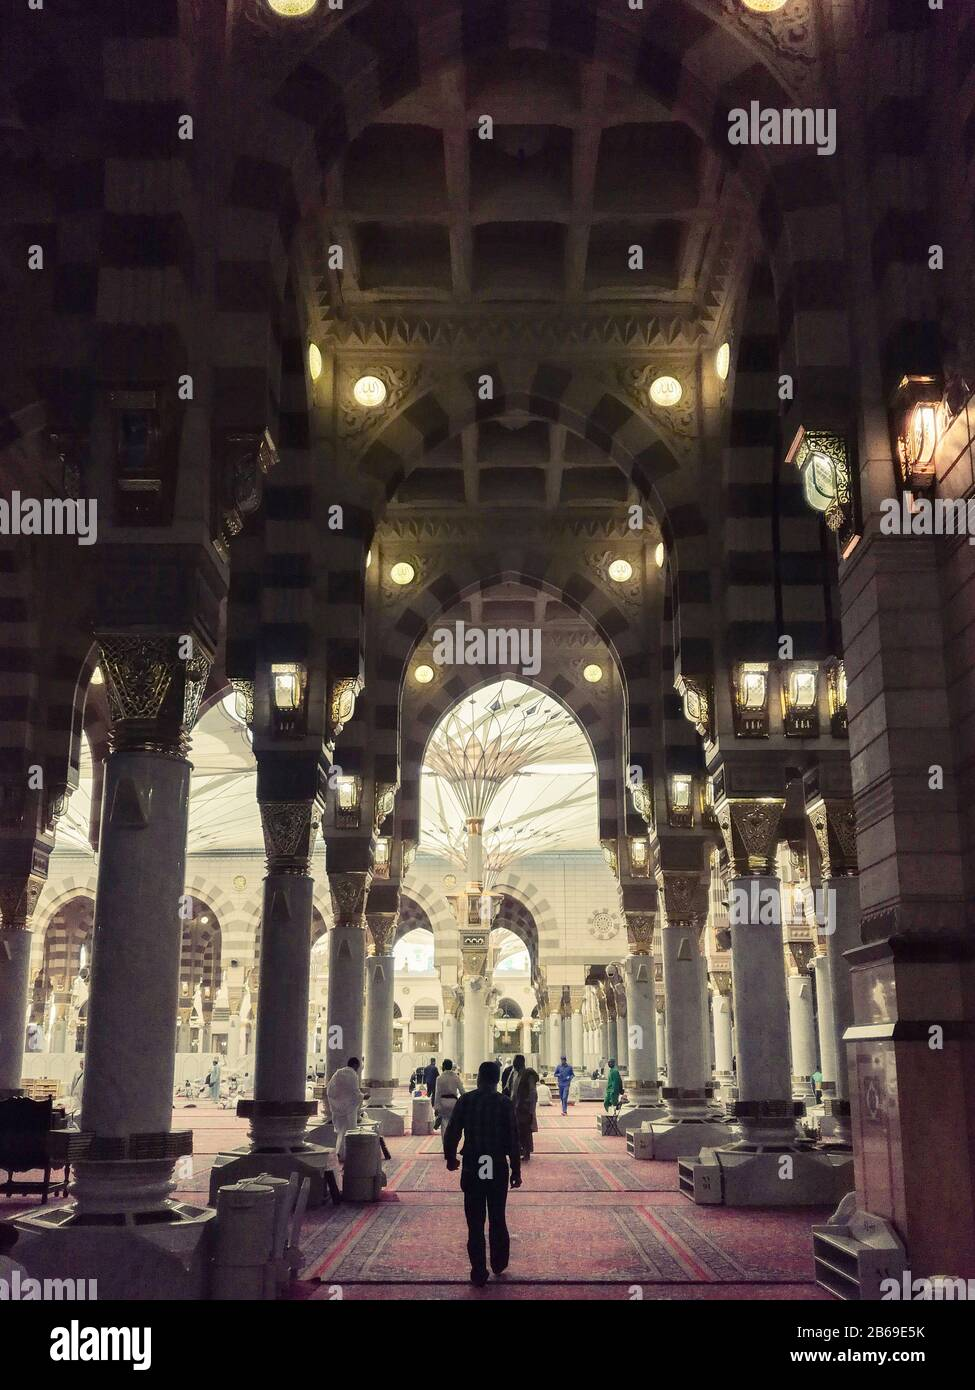 Muslims worshiping after praying in Ramadan inside al-Masjid An-Nabawi which is the second most sacred mosque in Islam and one of three sacred ones Stock Photo